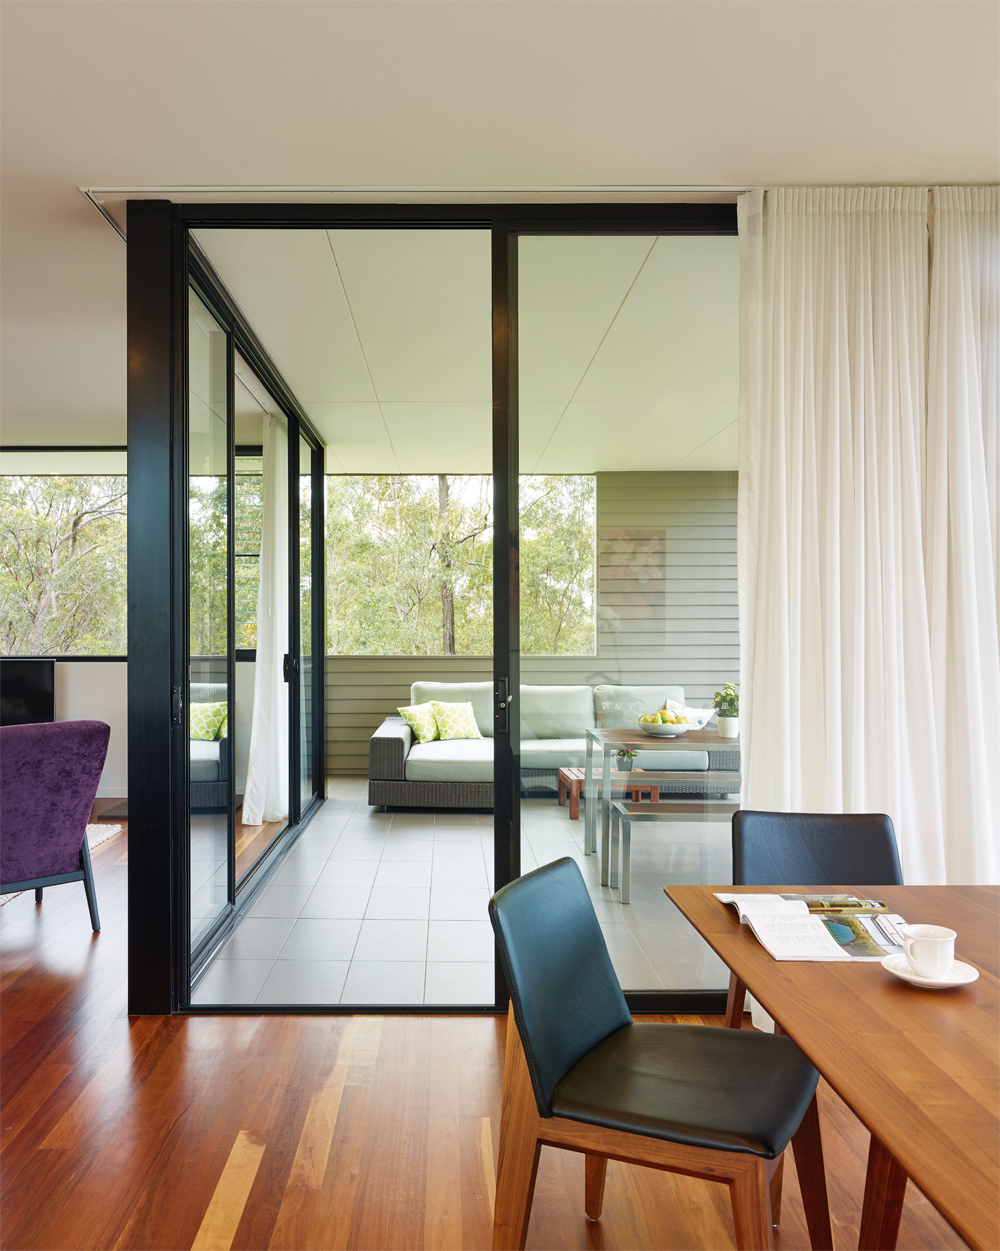 Grand Designs Australia: High Flyer - Architects' masterpiece - upstairs living room